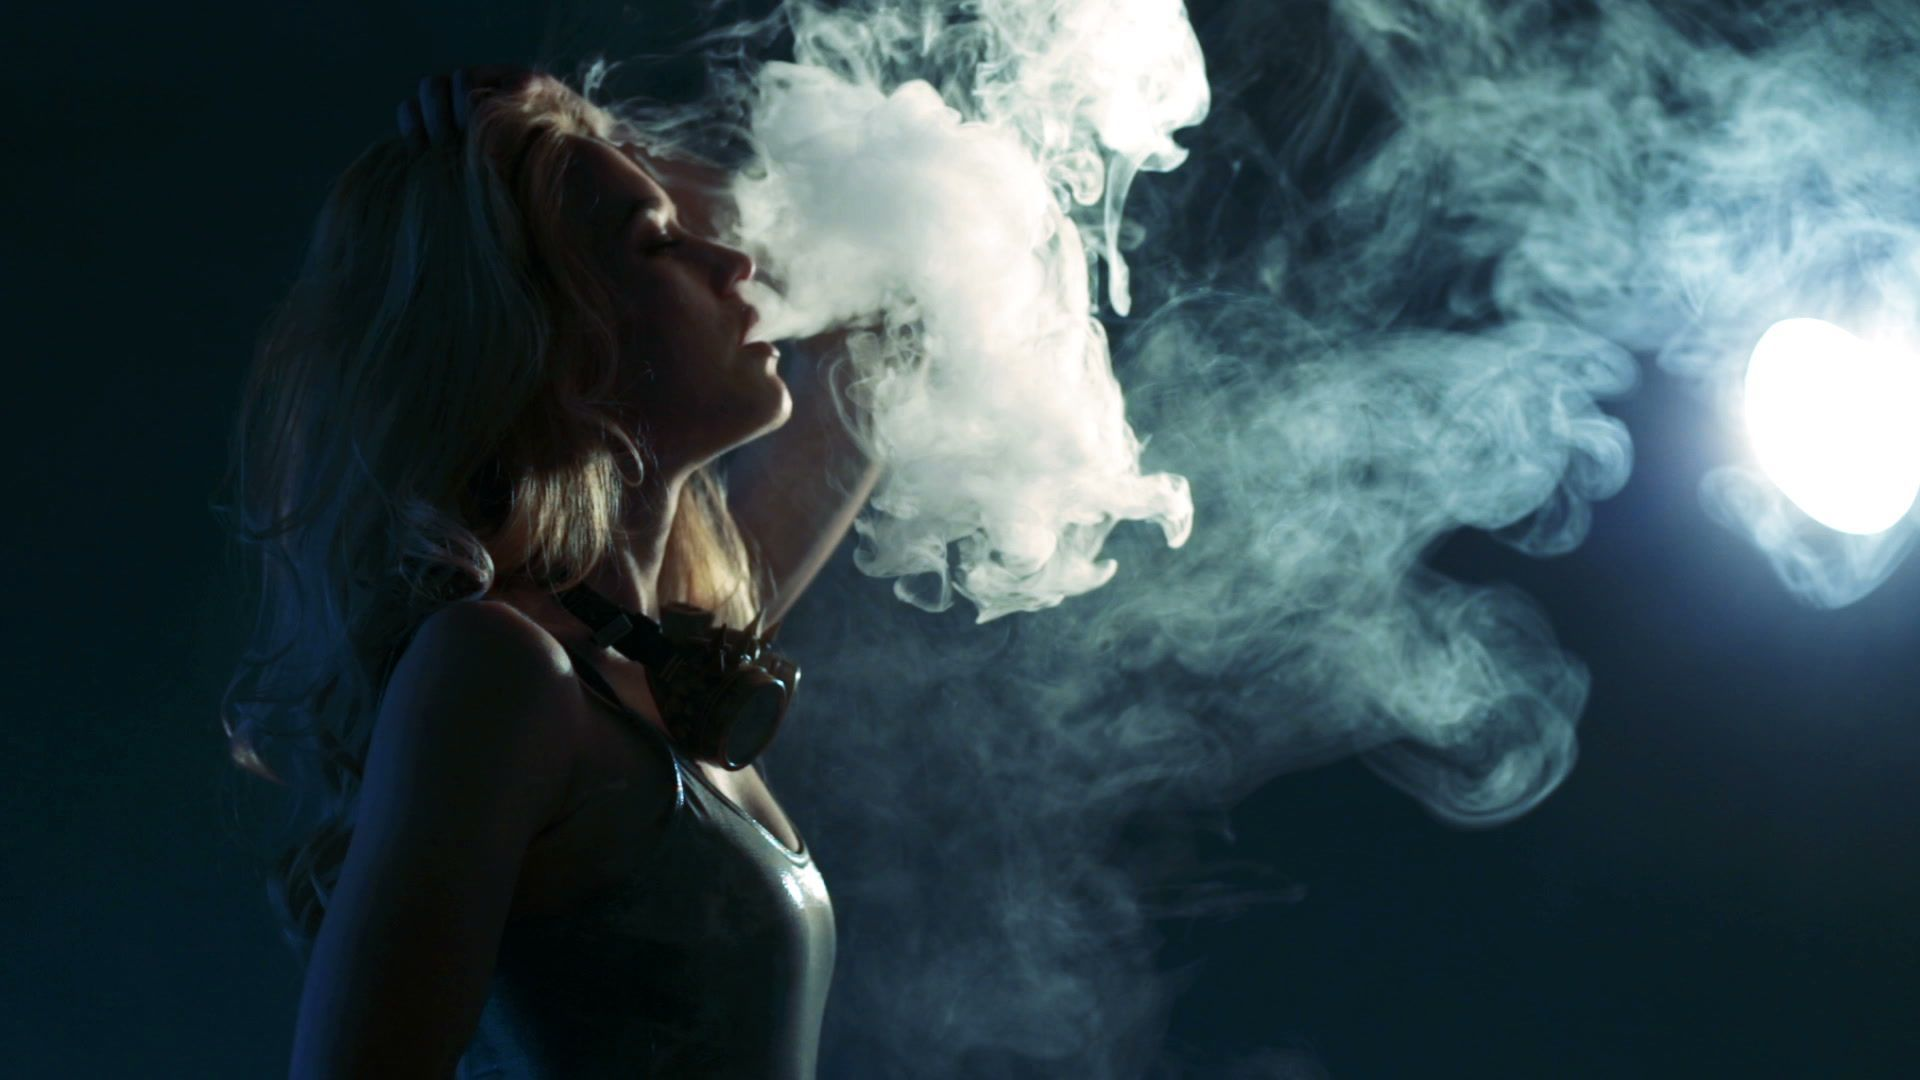 New 6-Year Study Will Track 800 Vapers' Health Mar...